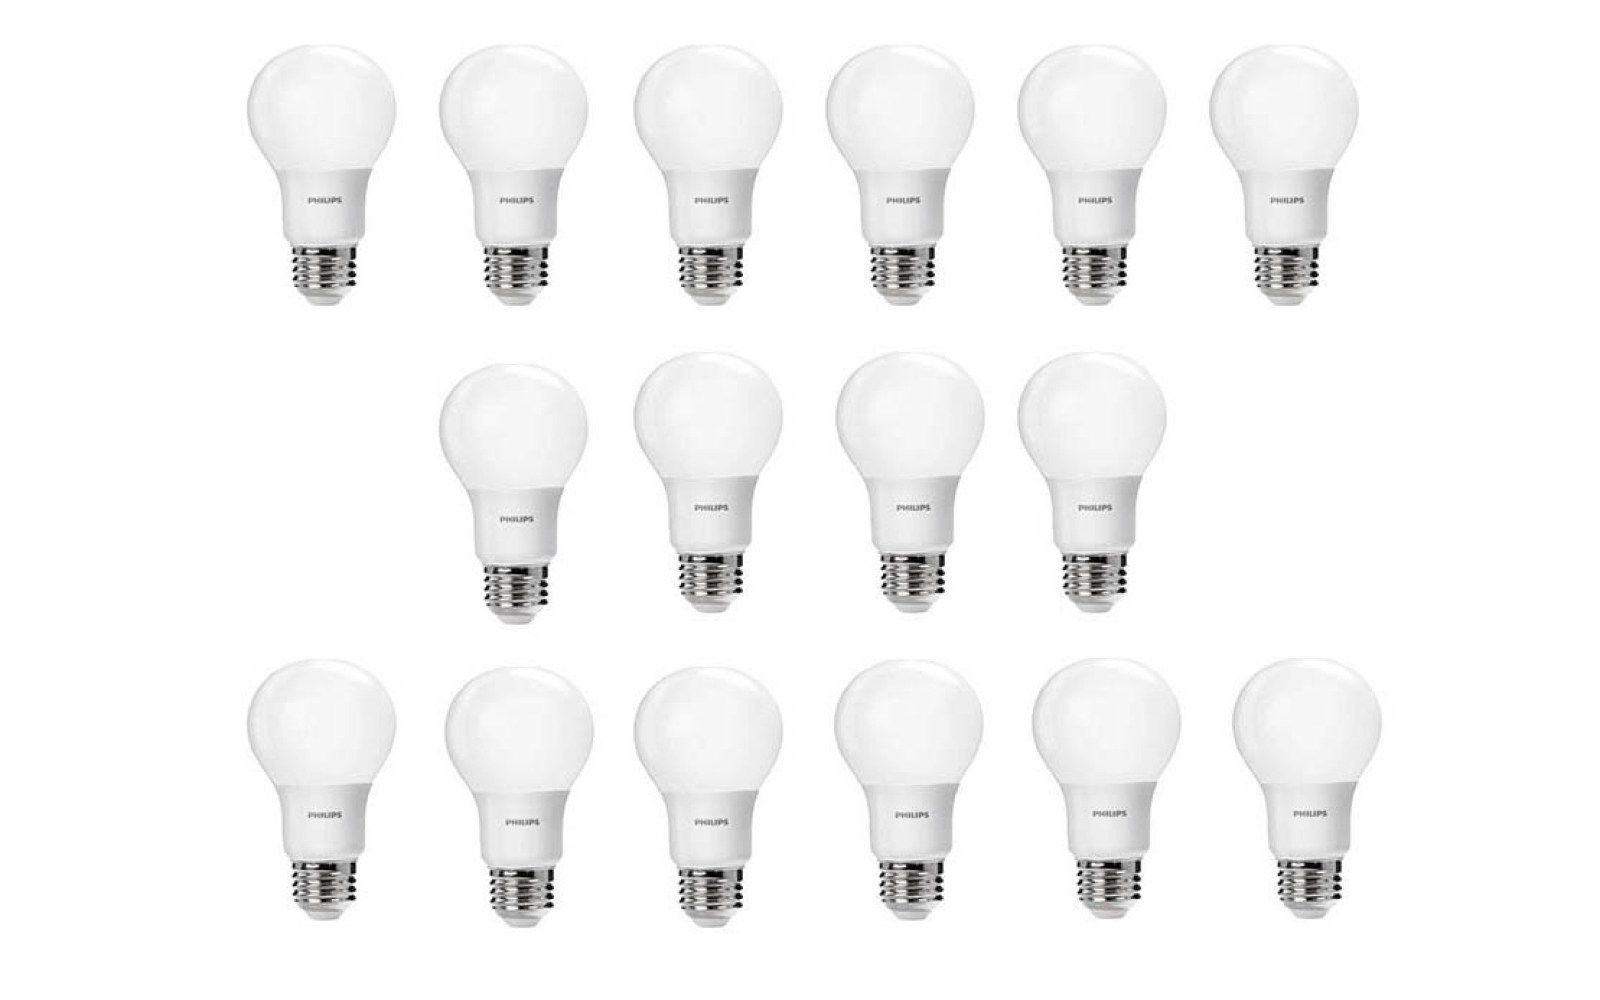 green deals  16-pack philips 60w daylight a19 led light bulbs  25 prime shipped  more